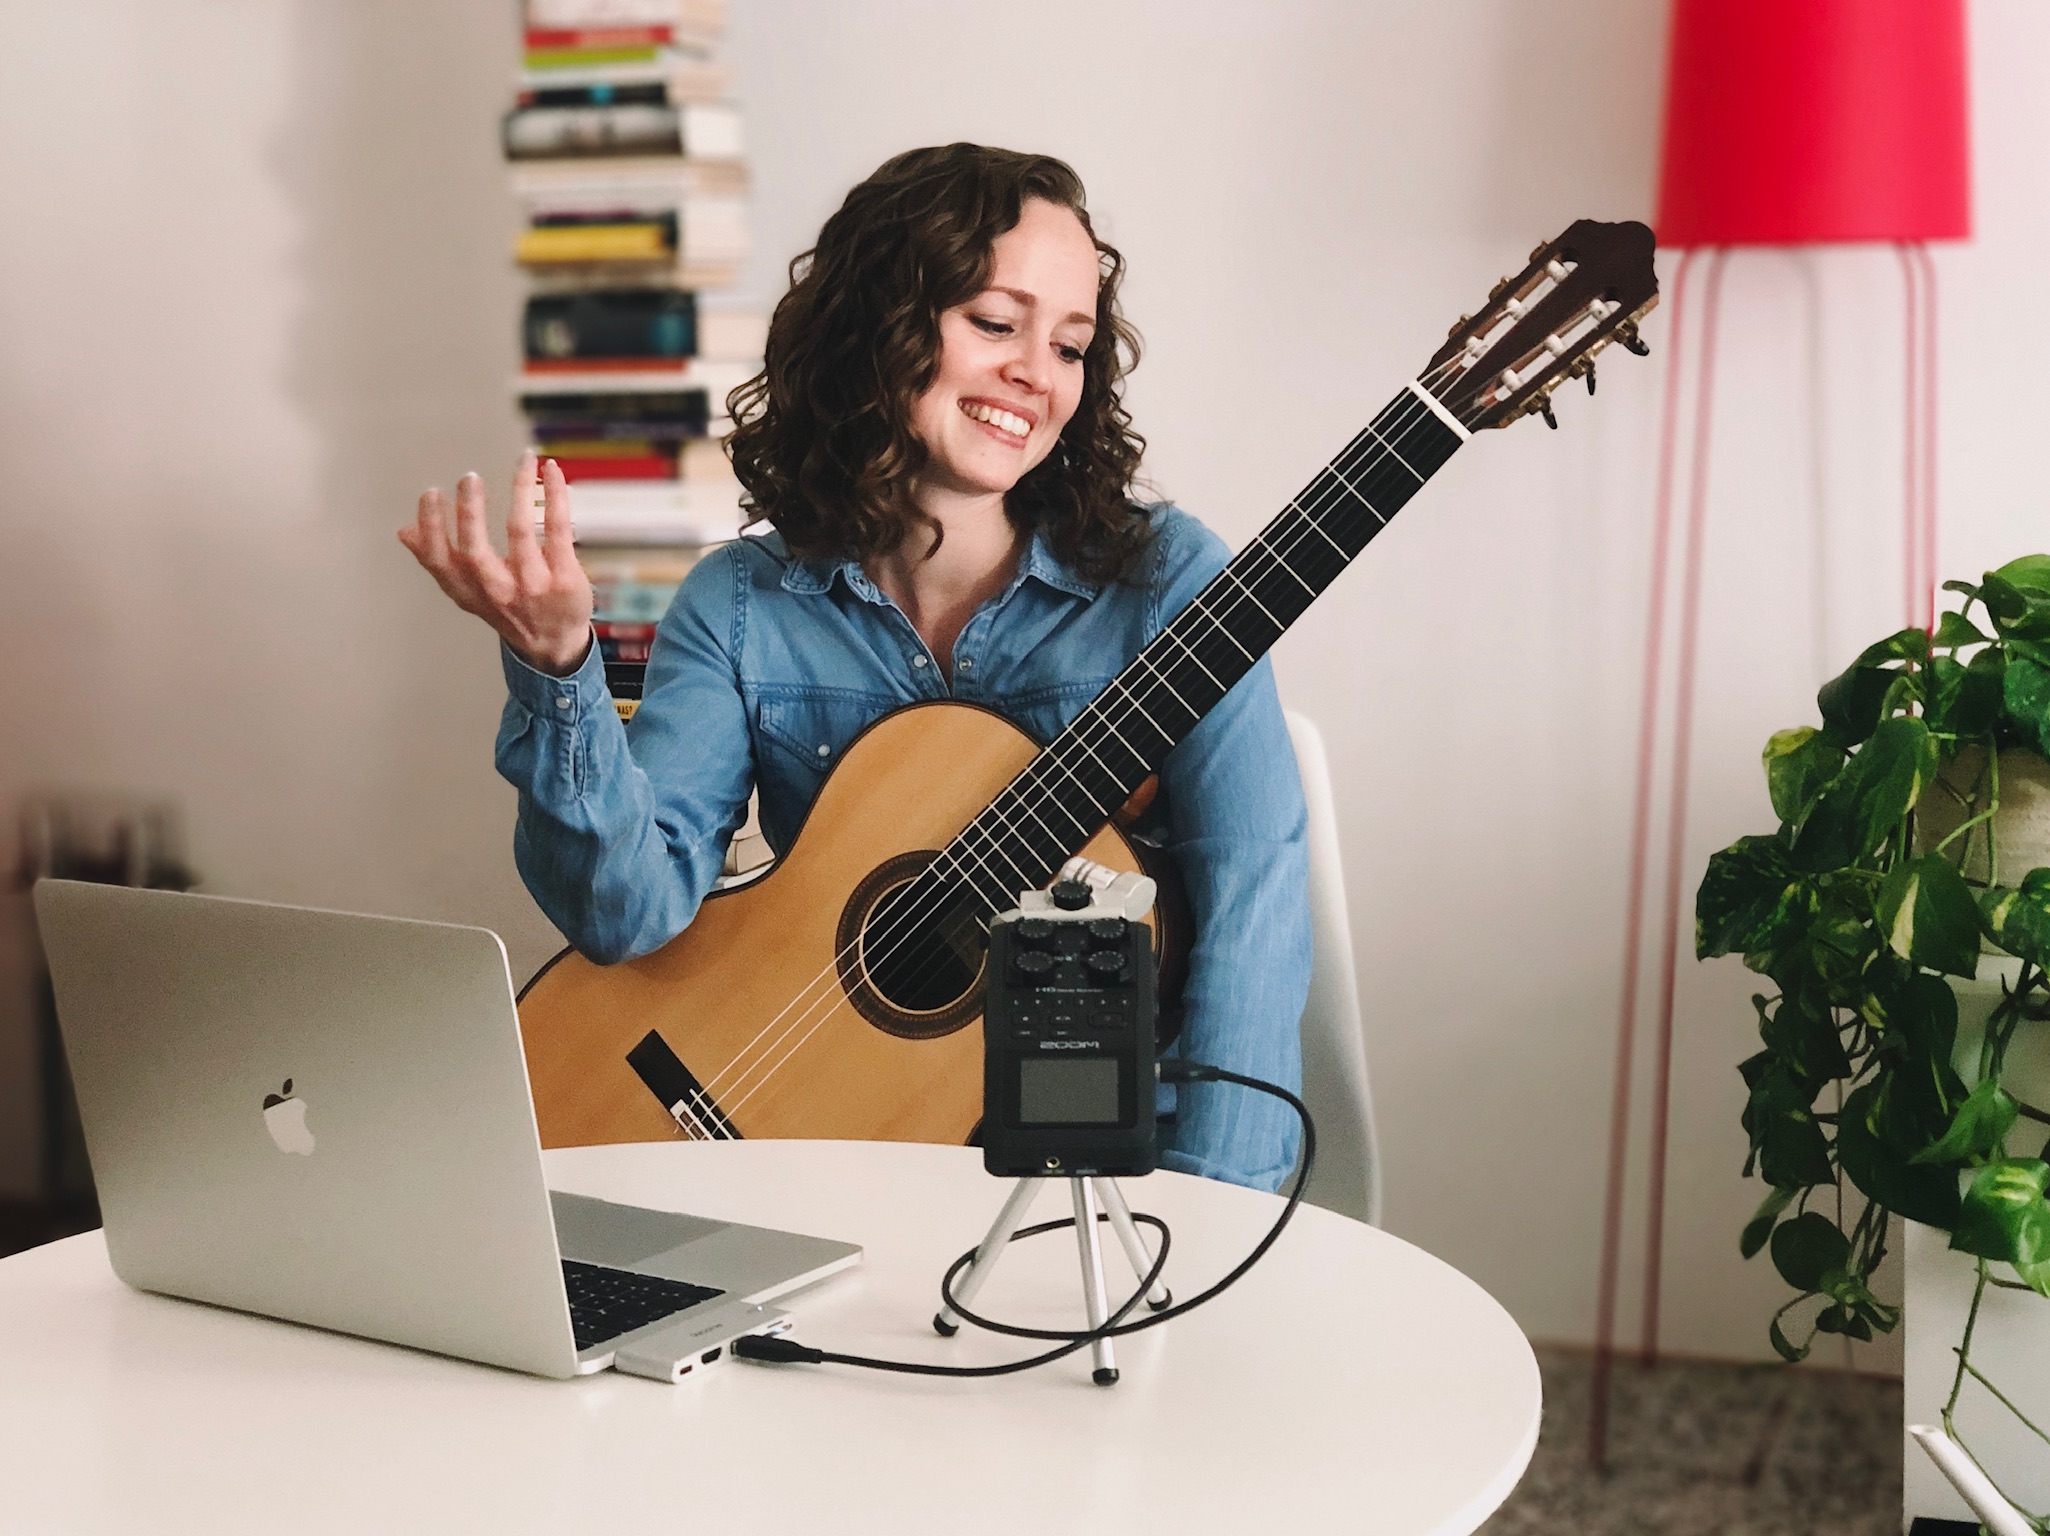 online guitar lessons with Jessica Kaiser